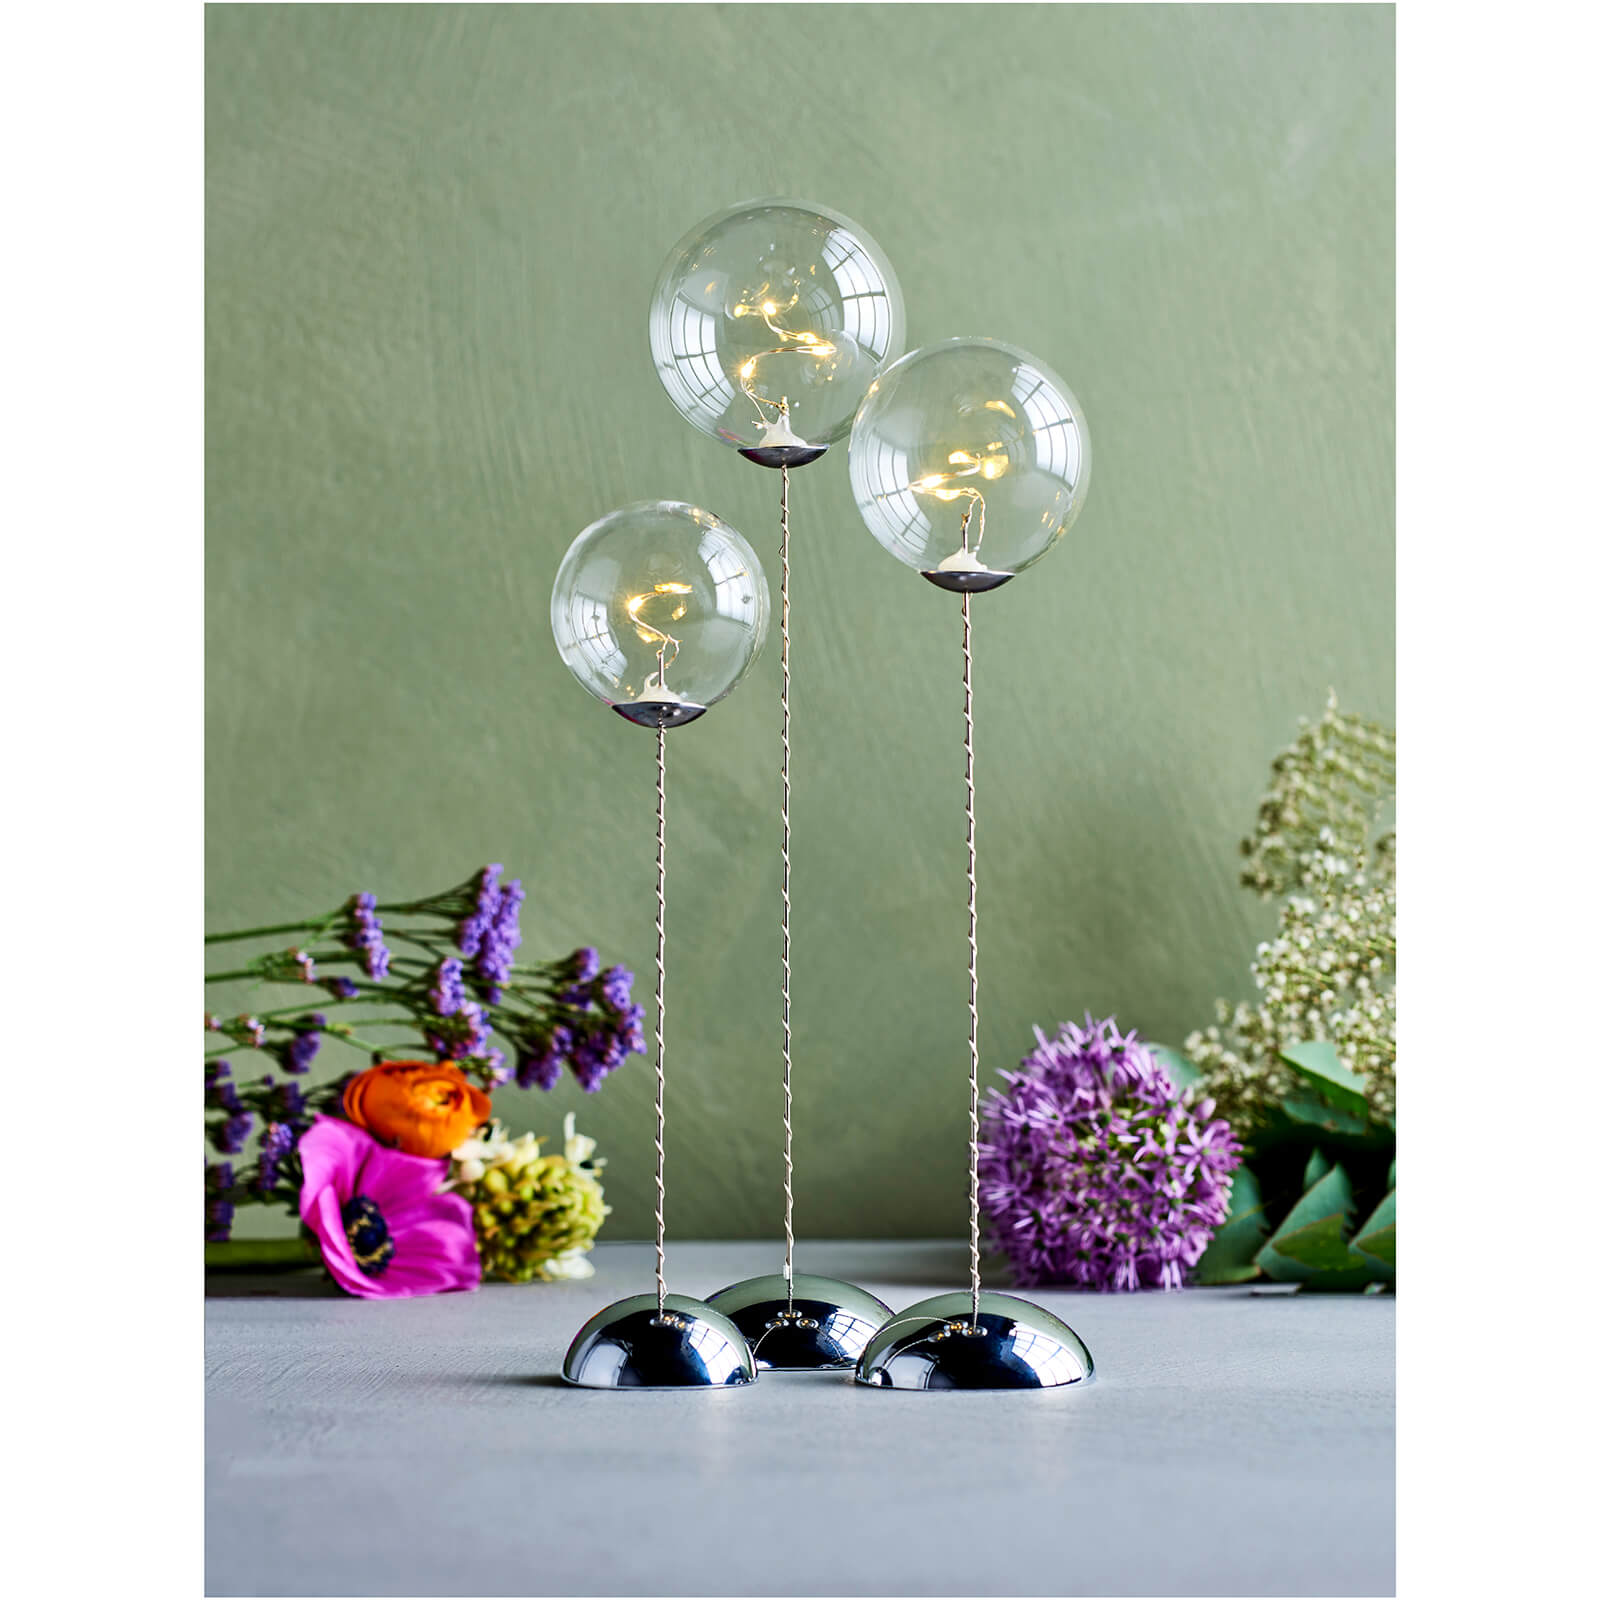 Sirius Pure Trio Glass Baubles with Timer - Clear